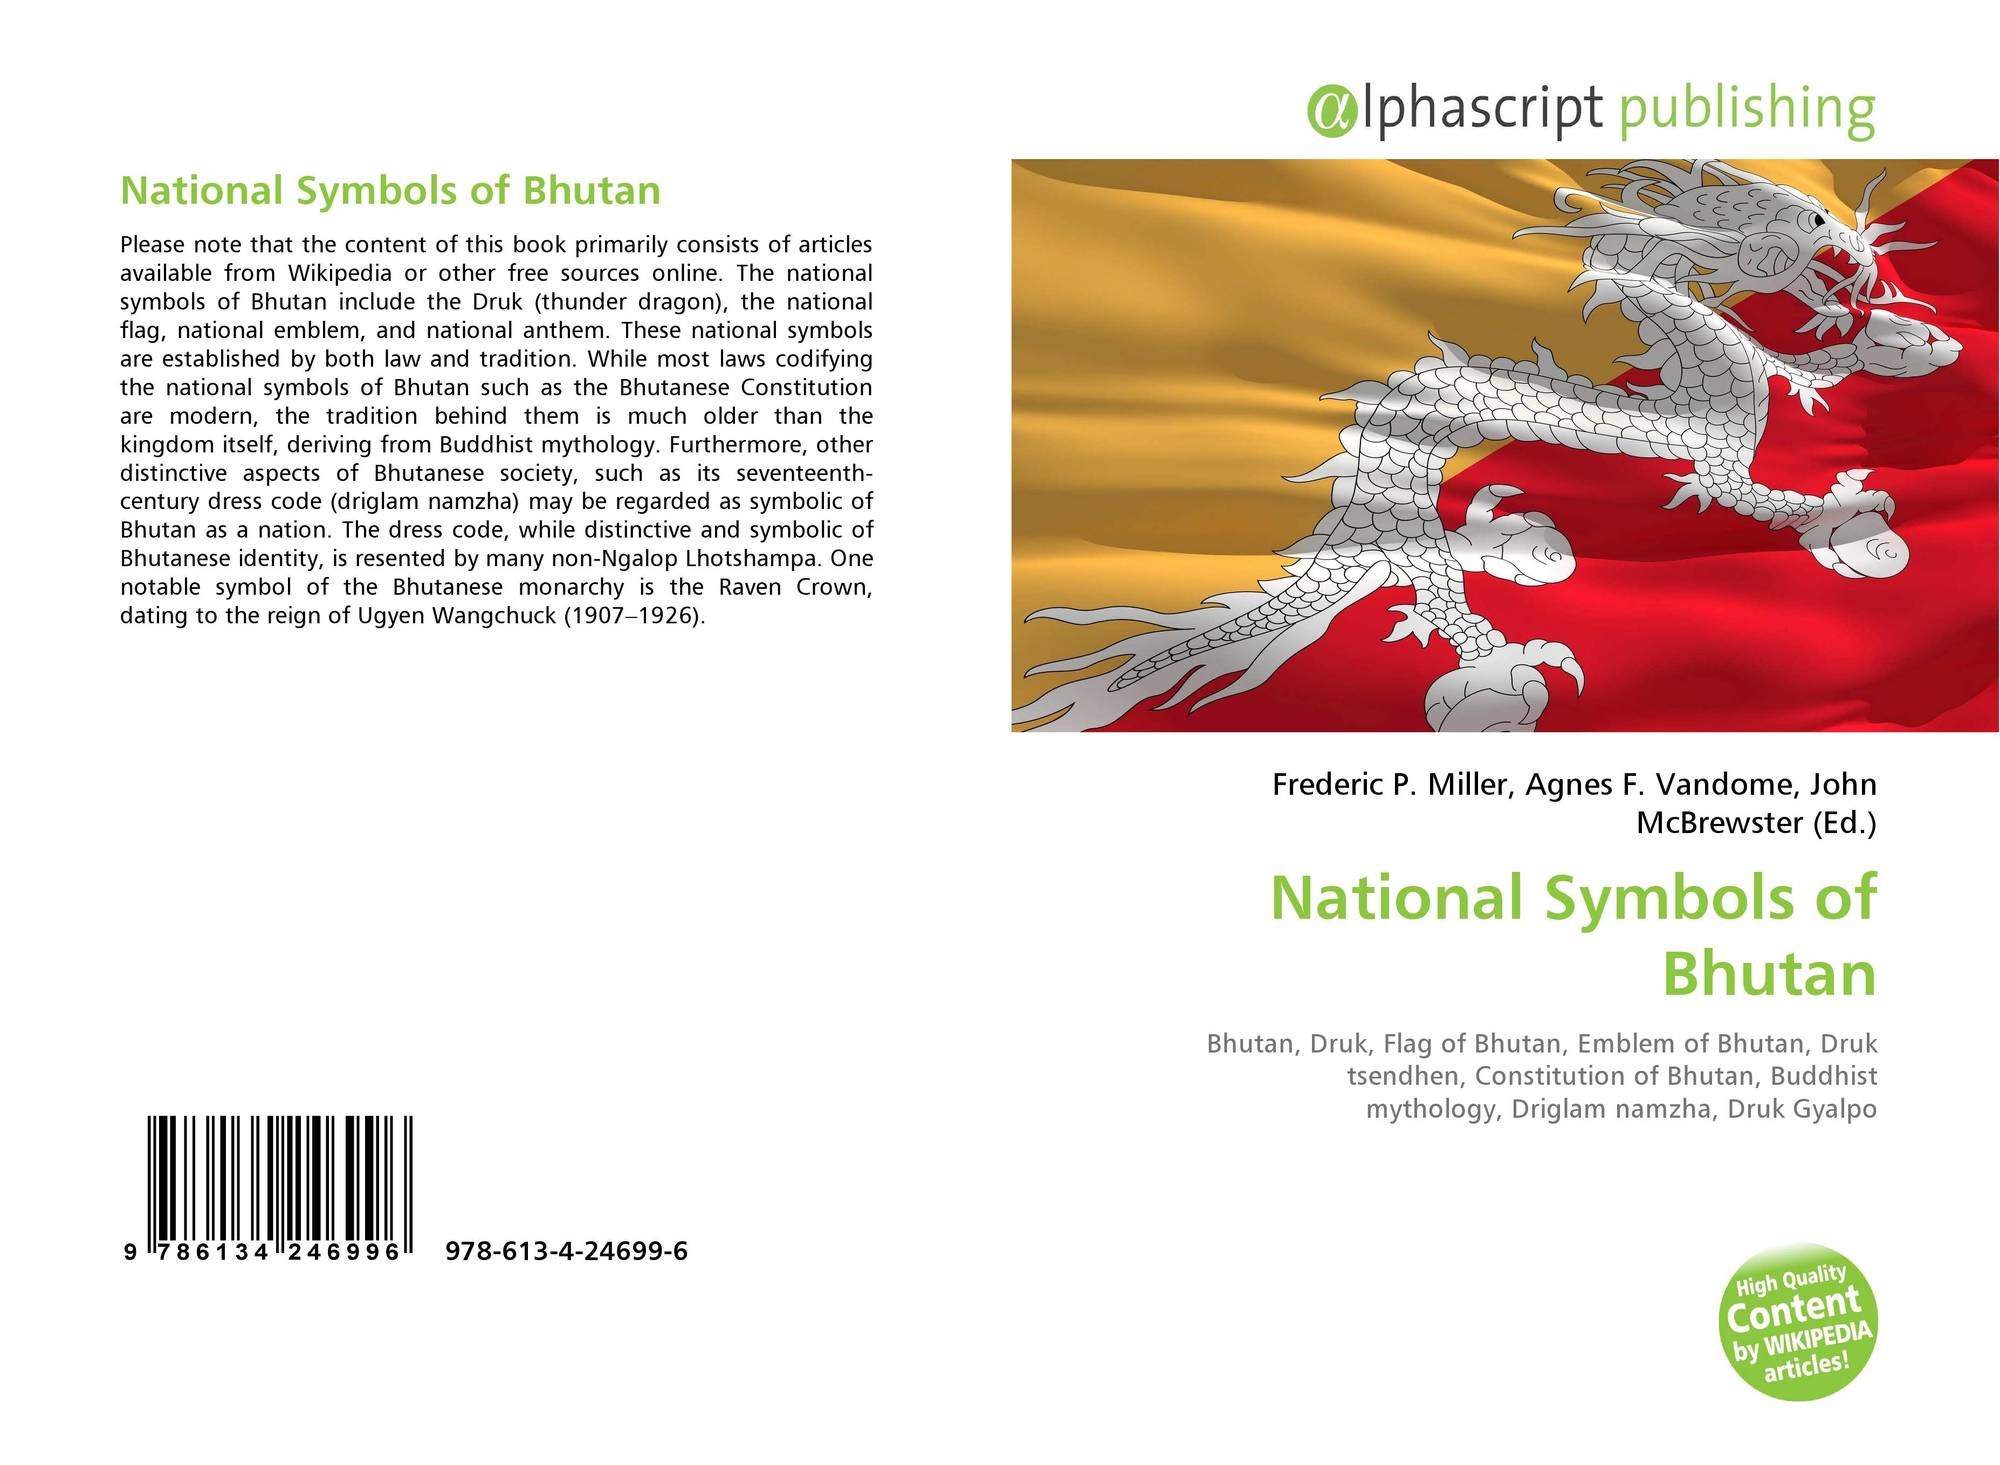 National Symbols Of Bhutan 978 613 4 24699 6 6134246999 9786134246996